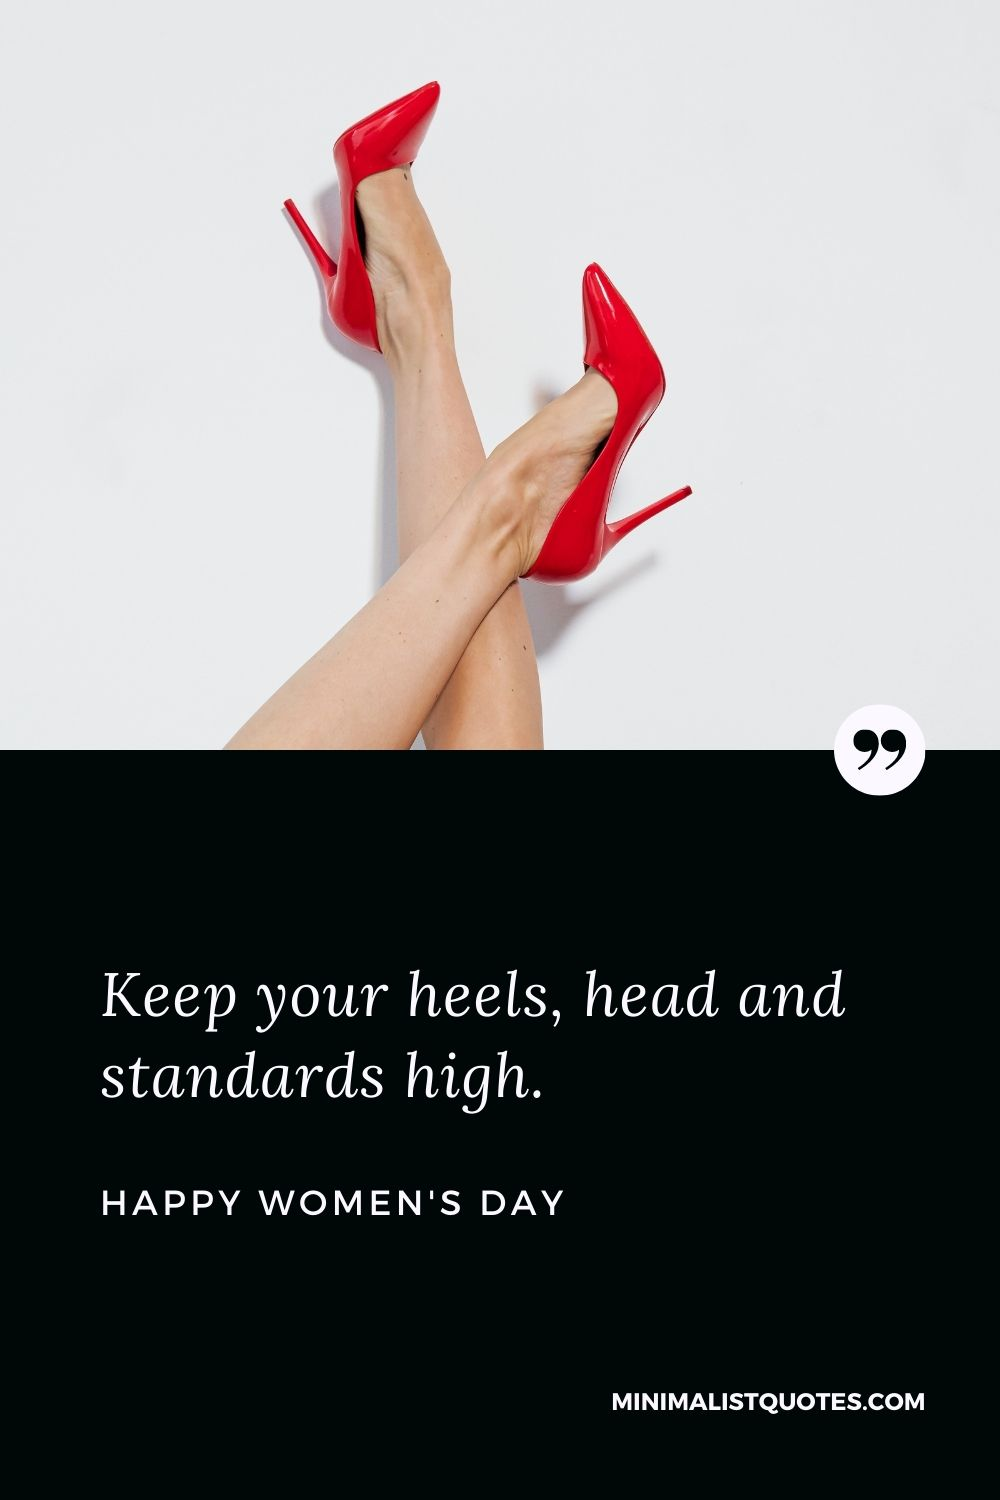 Women's Day Wish & Message: Keep your heels, head, and standards high.